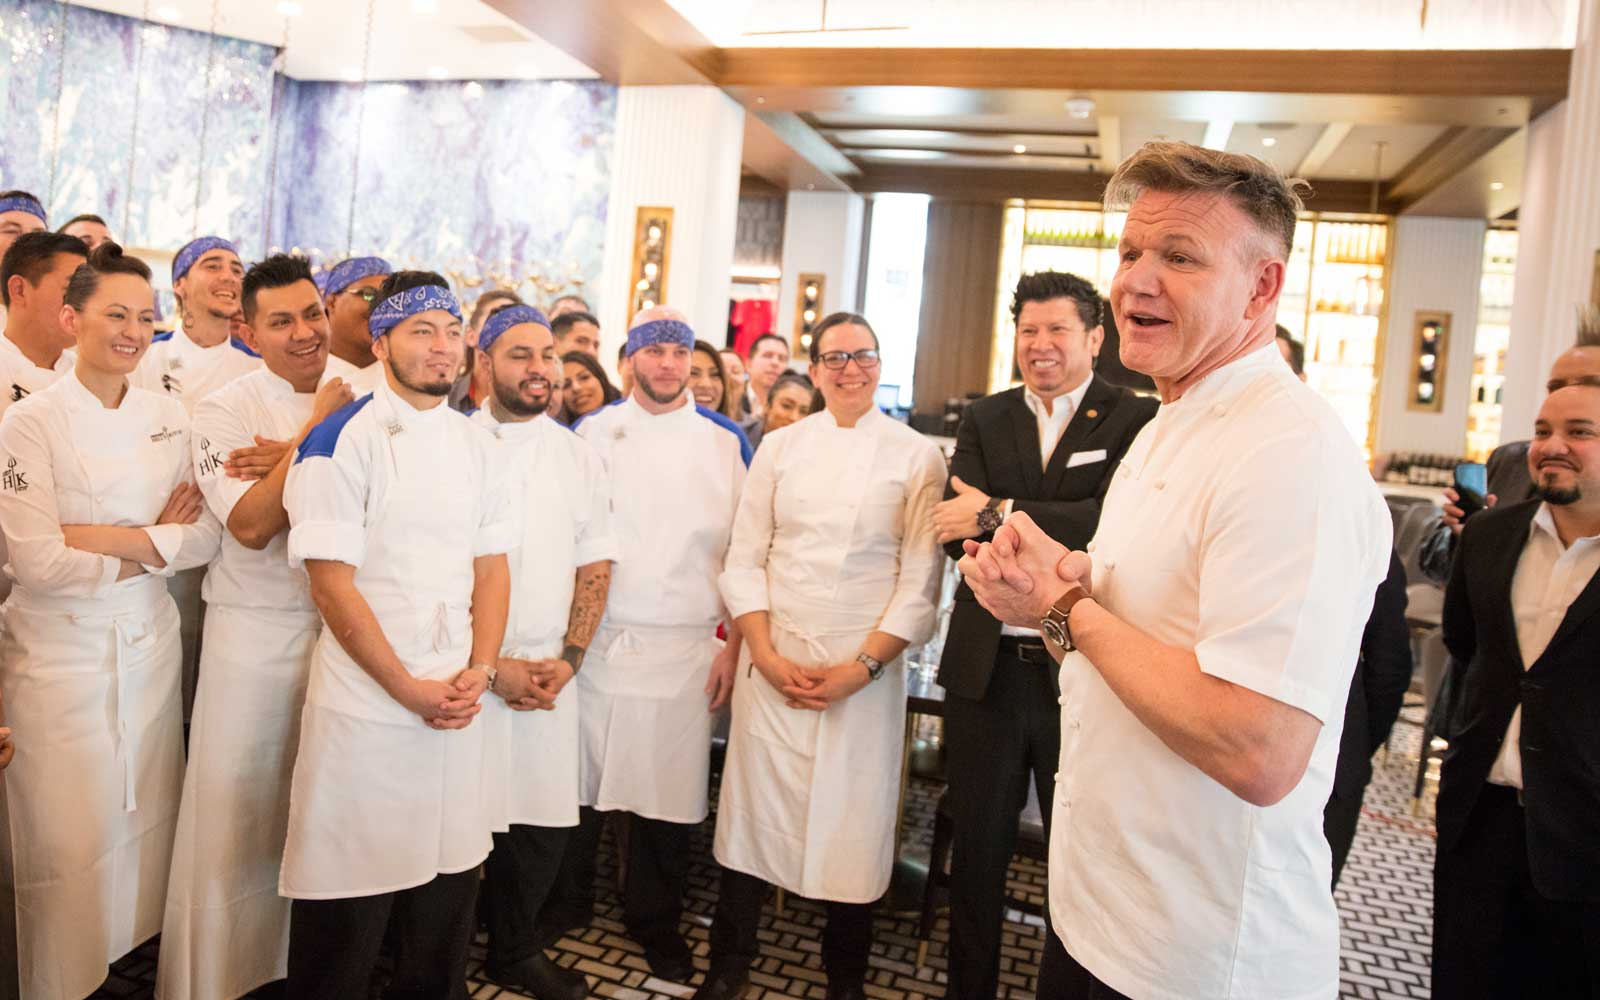 Gordon Ramsay's Las Vegas Hell's Kitchen with staff